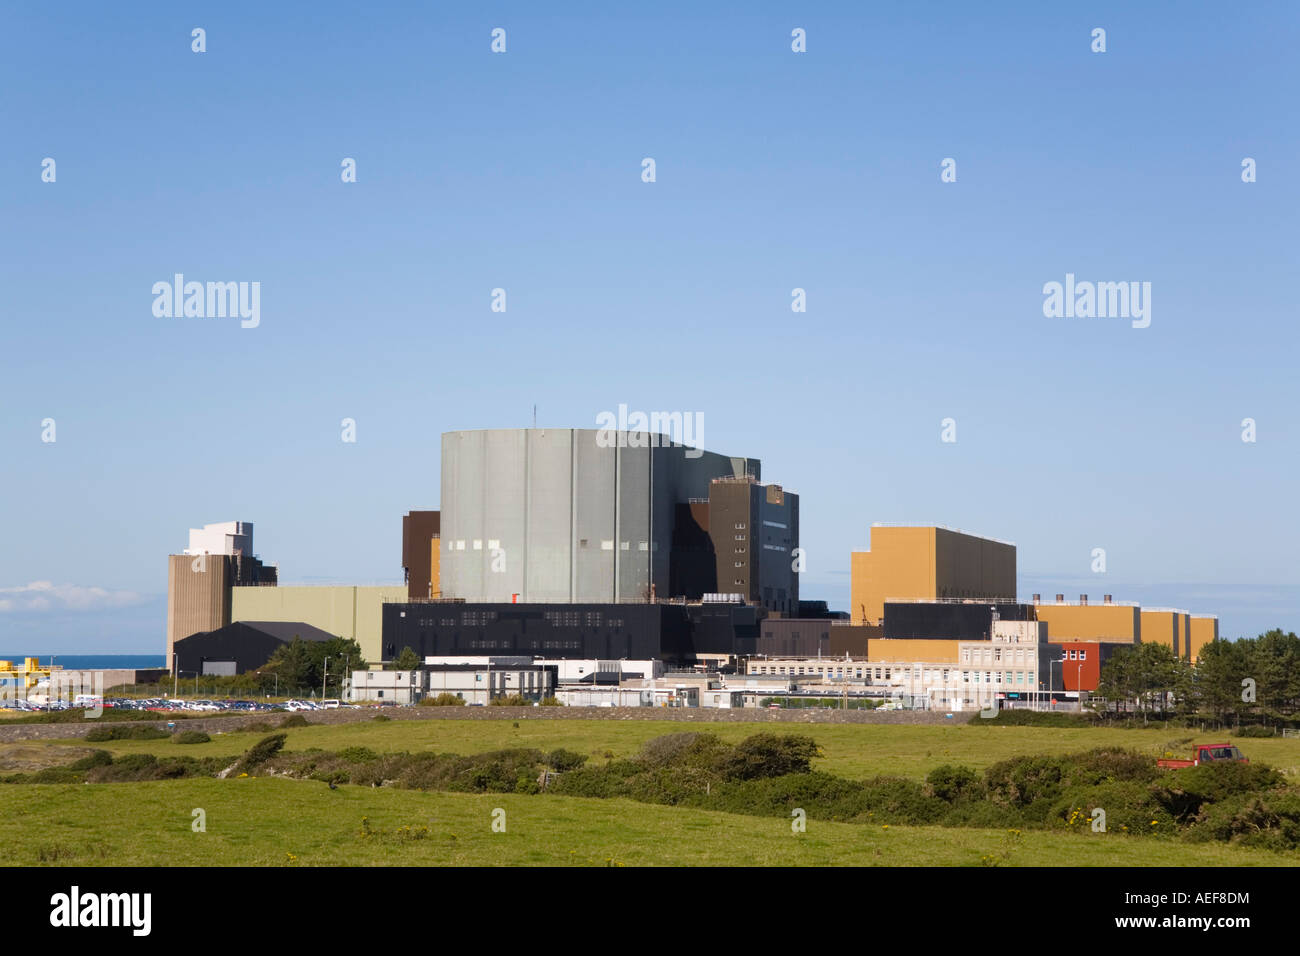 Wylfa A atomic energy Nuclear Power Station exterior on the Isle of Anglesey, Cemaes, North Wales, UK, Britain - Stock Image